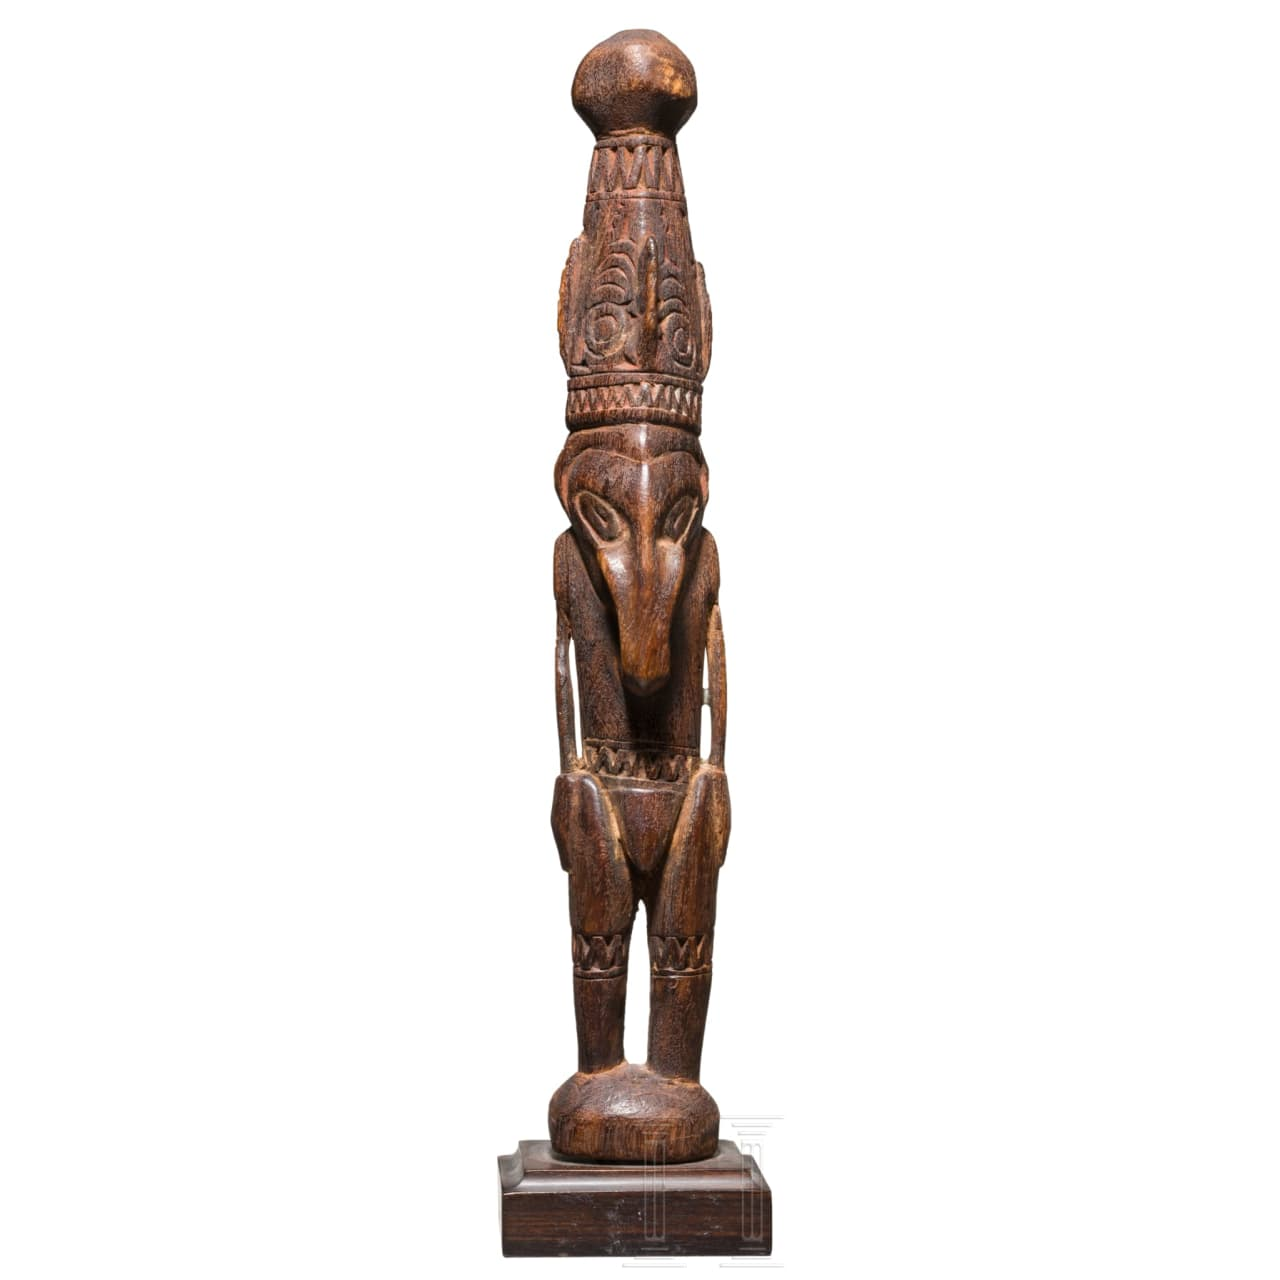 A Papua New Guinean anthropomorphic figure